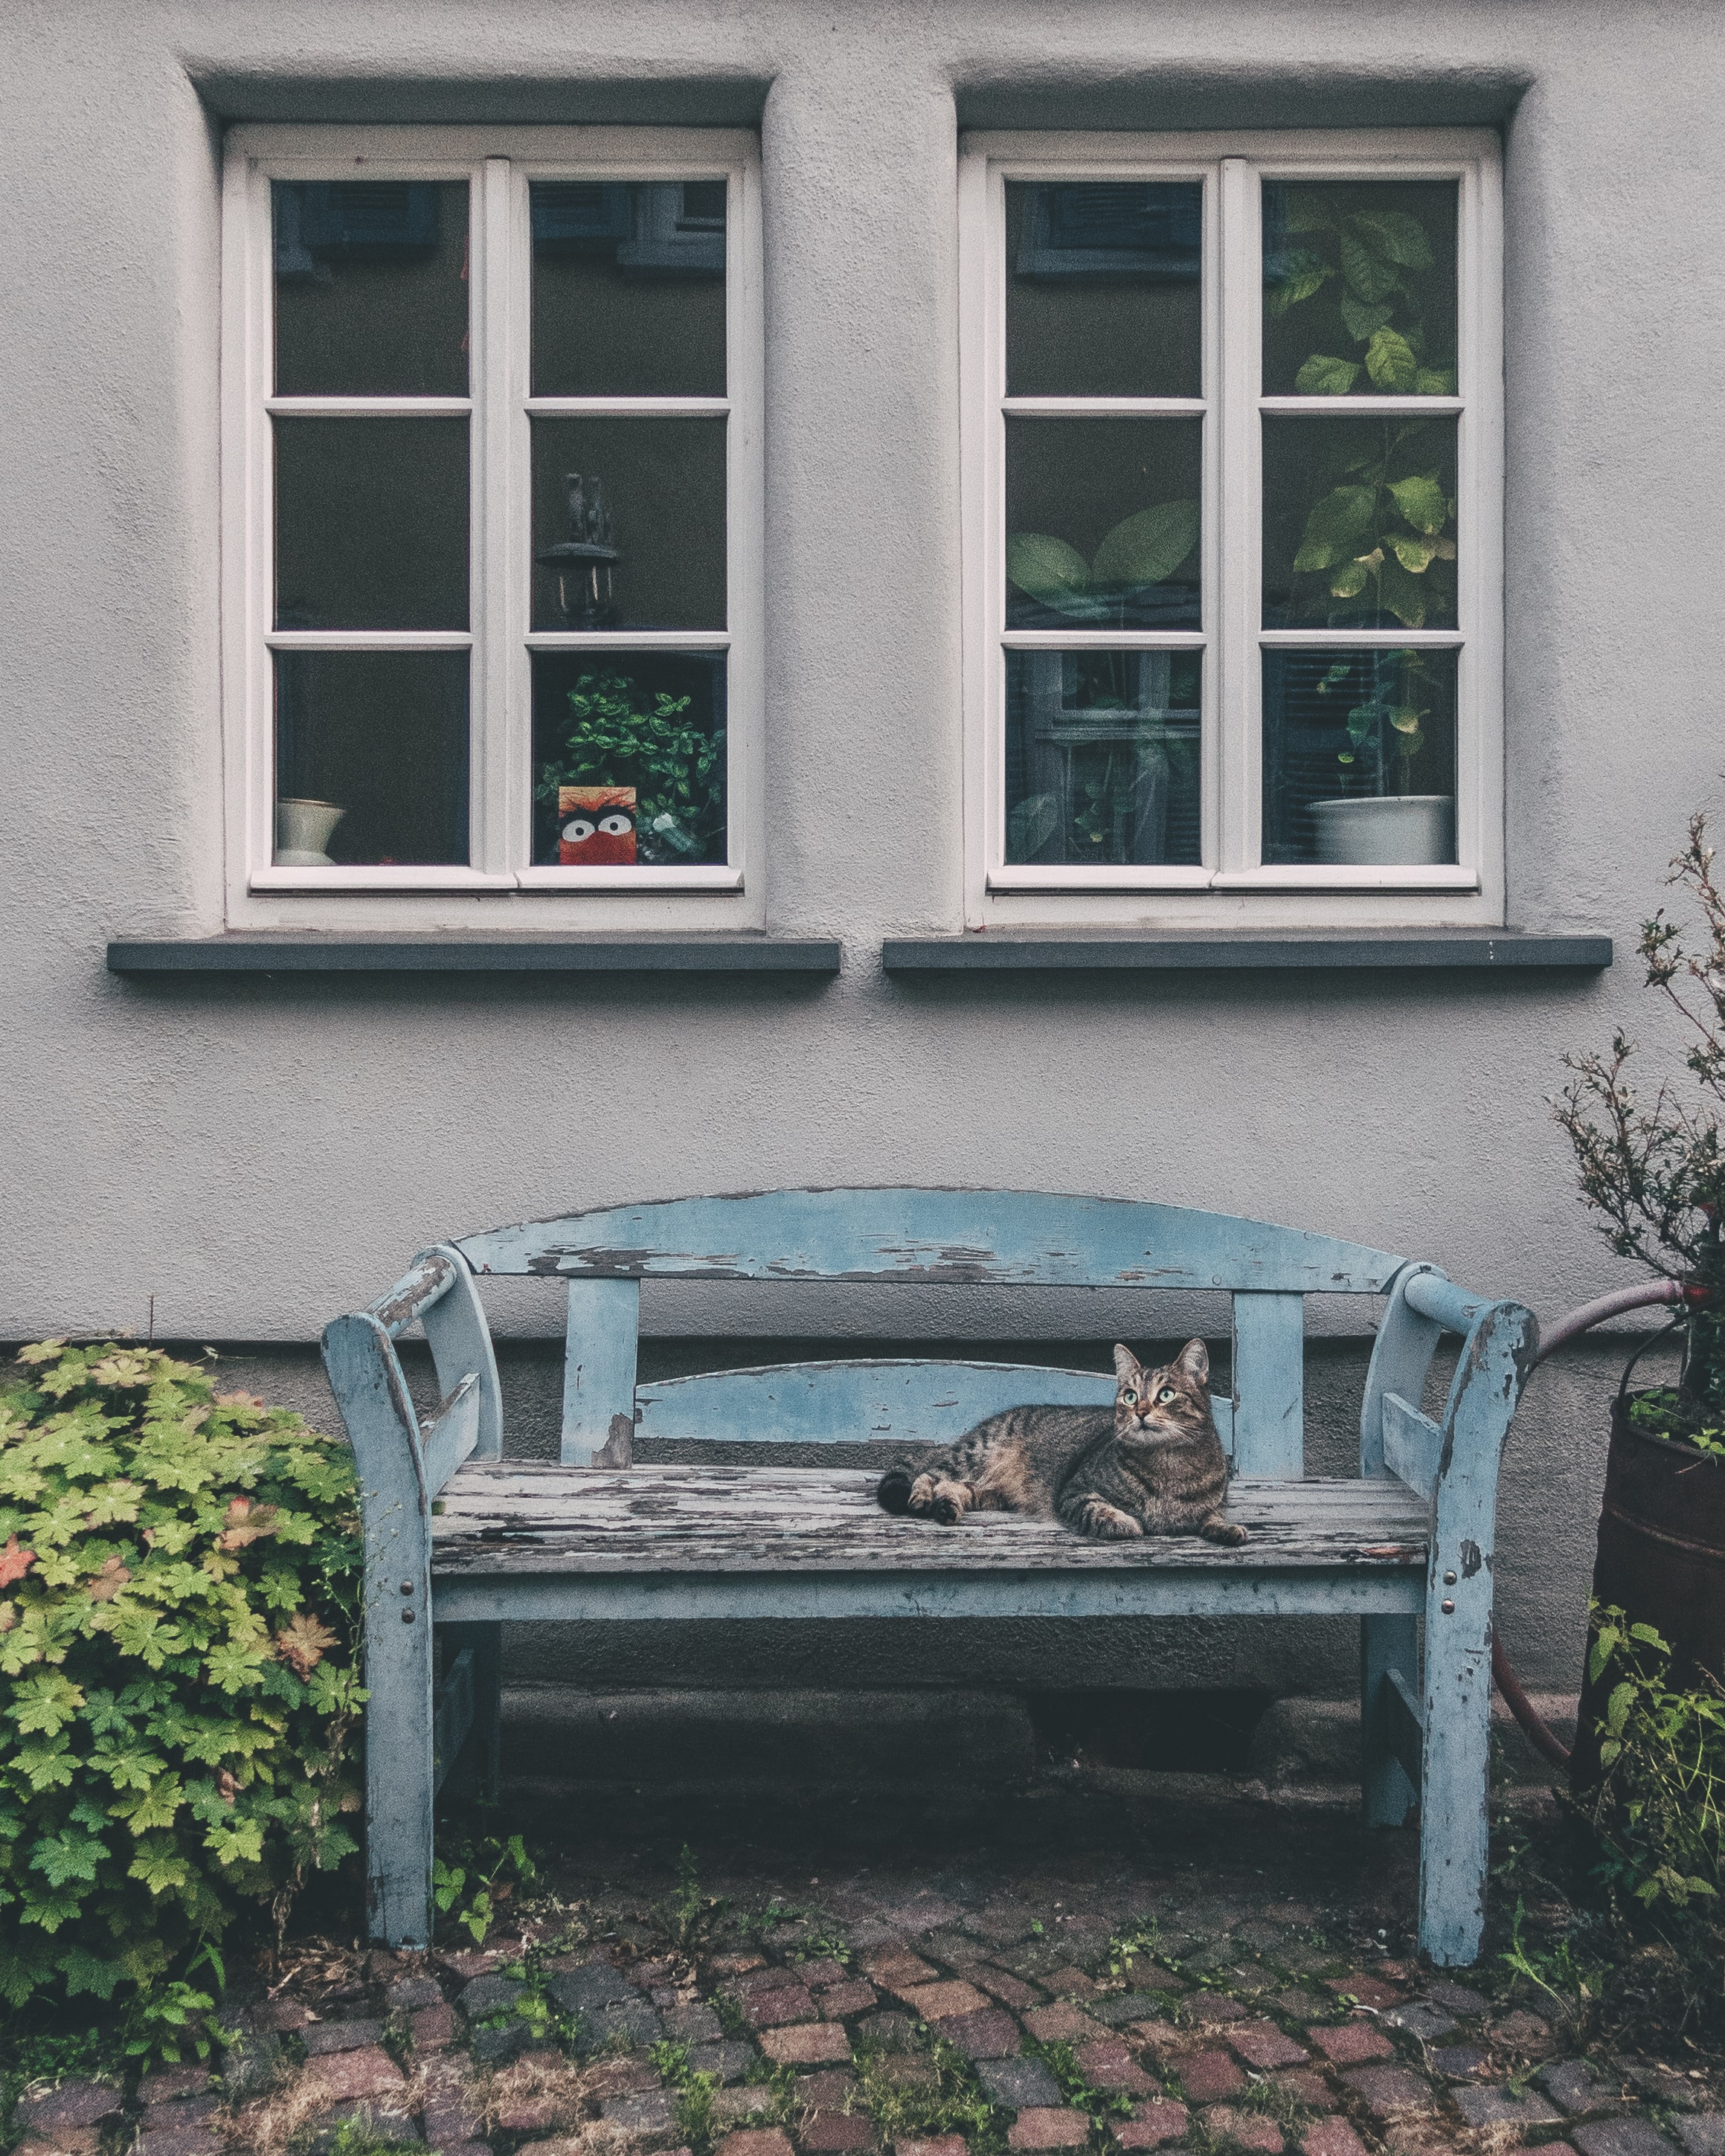 gray tabby cat lying on blue wooden bench